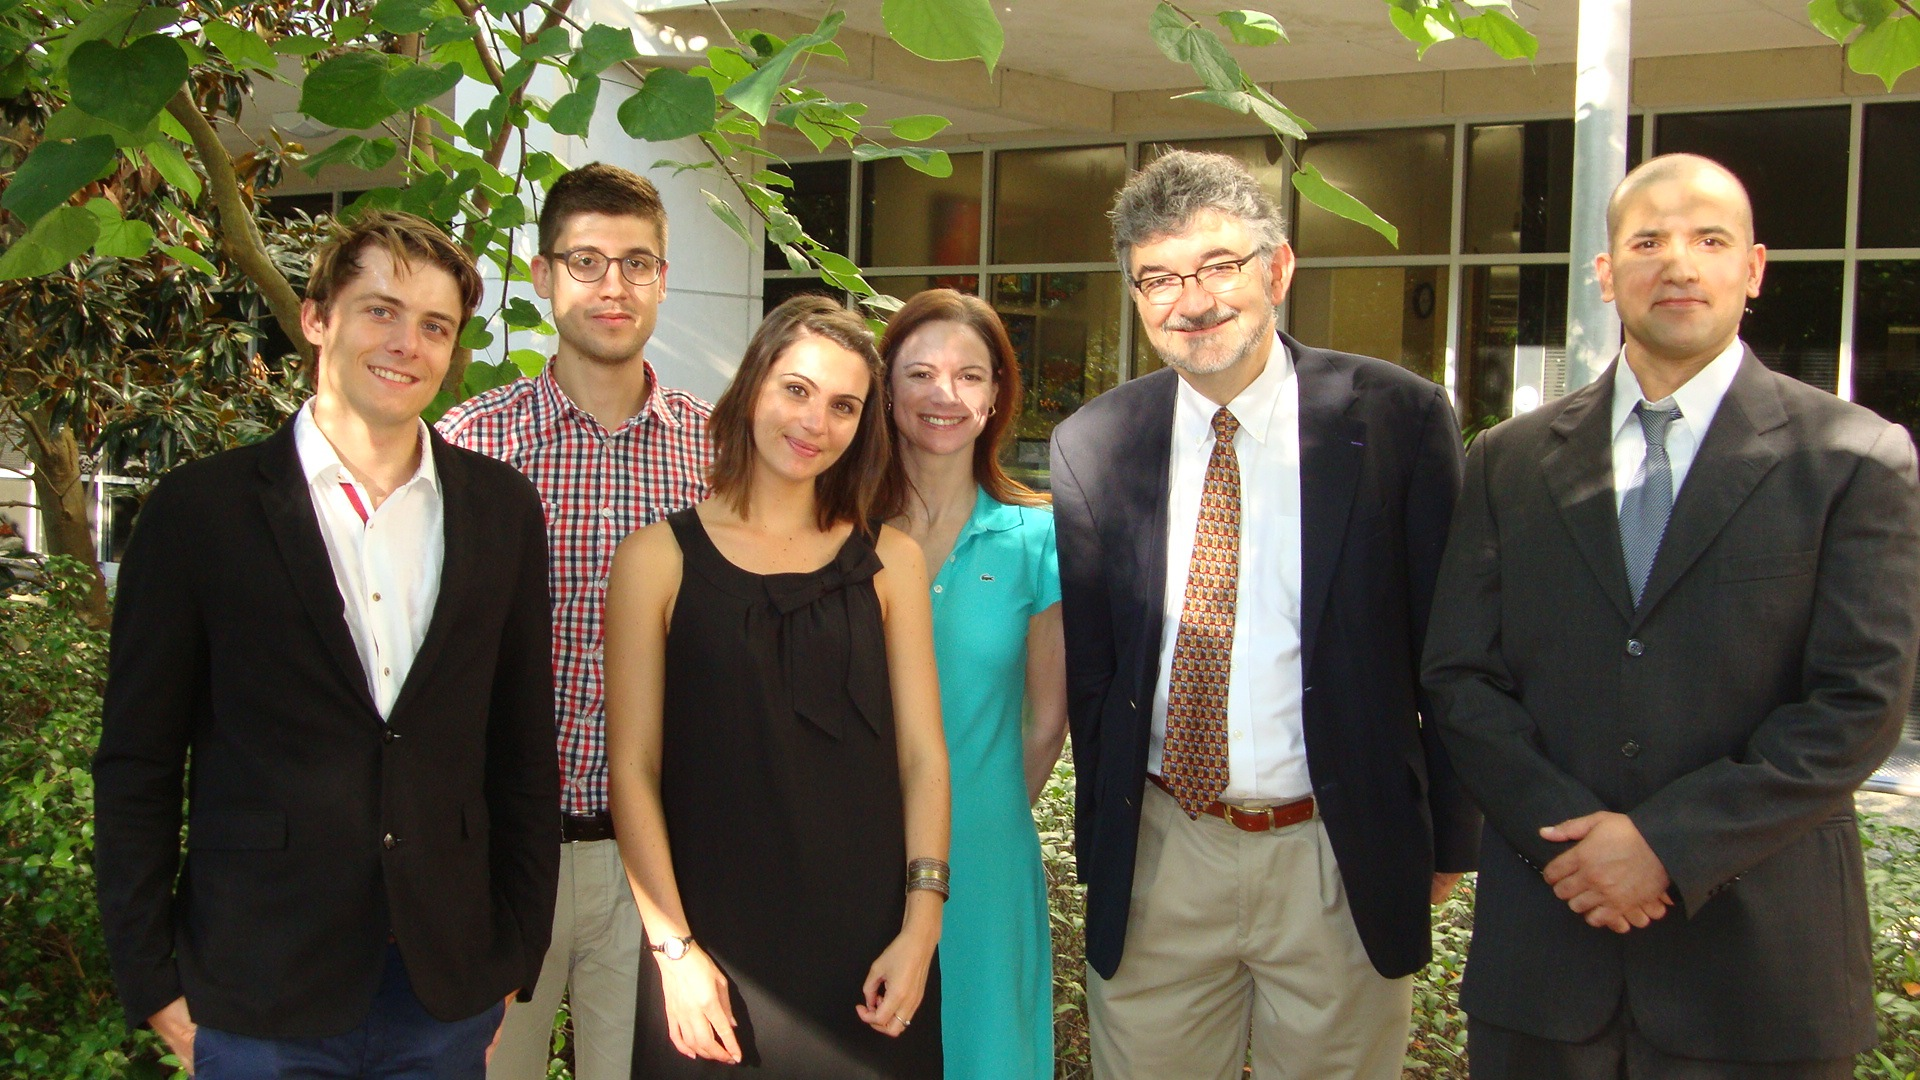 LSU LAW welcomes the LL M class of 2015 | LSU Law Worldwide